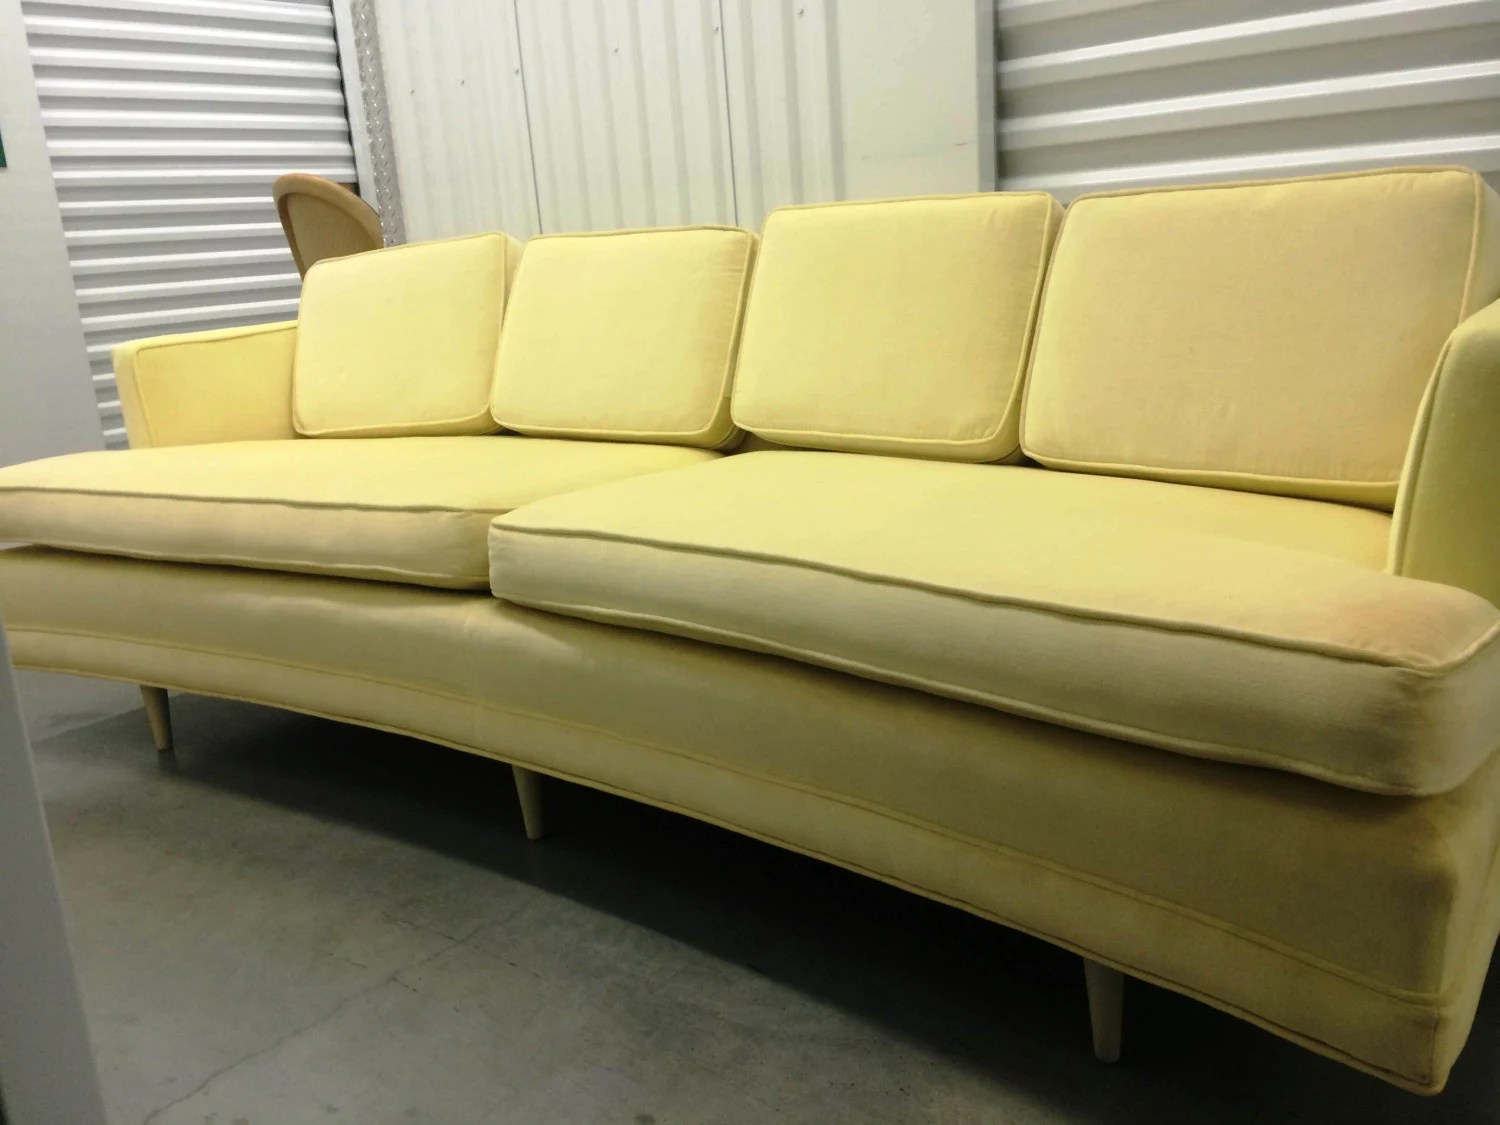 60s Style Couches Sold Vintage Mid Century Curved Sofa In The Style Of